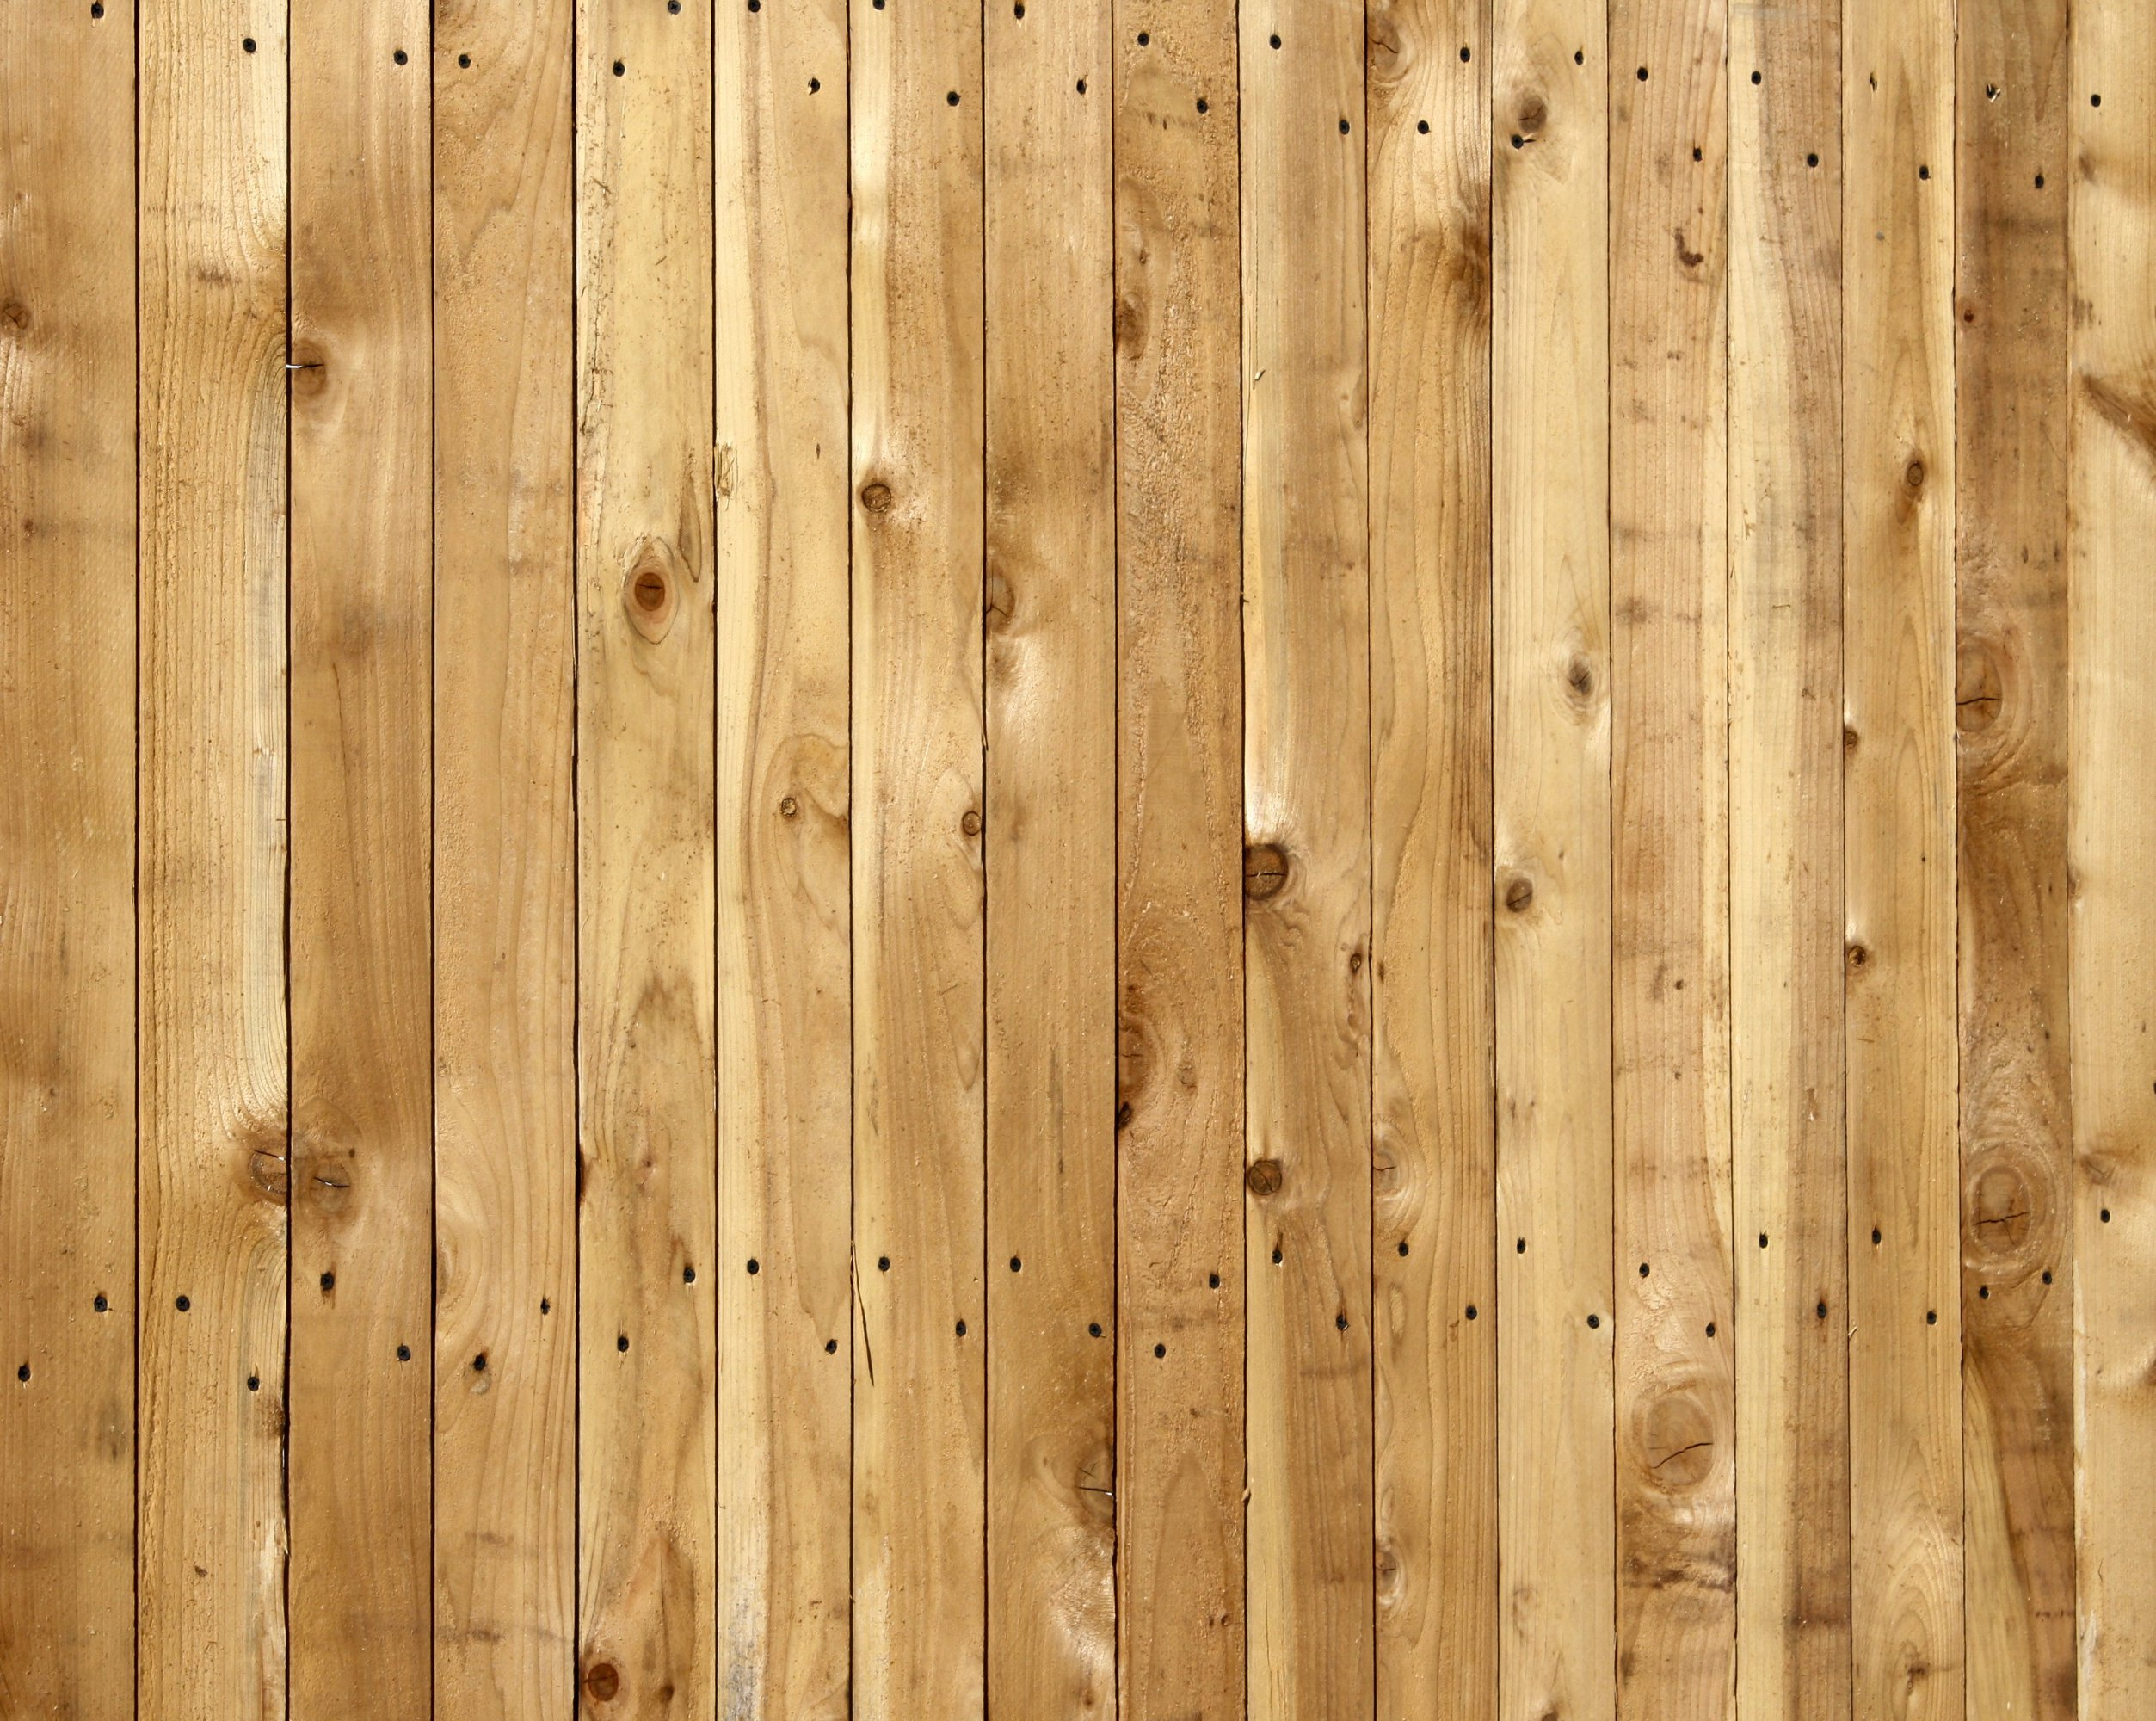 Wood textures clipart.